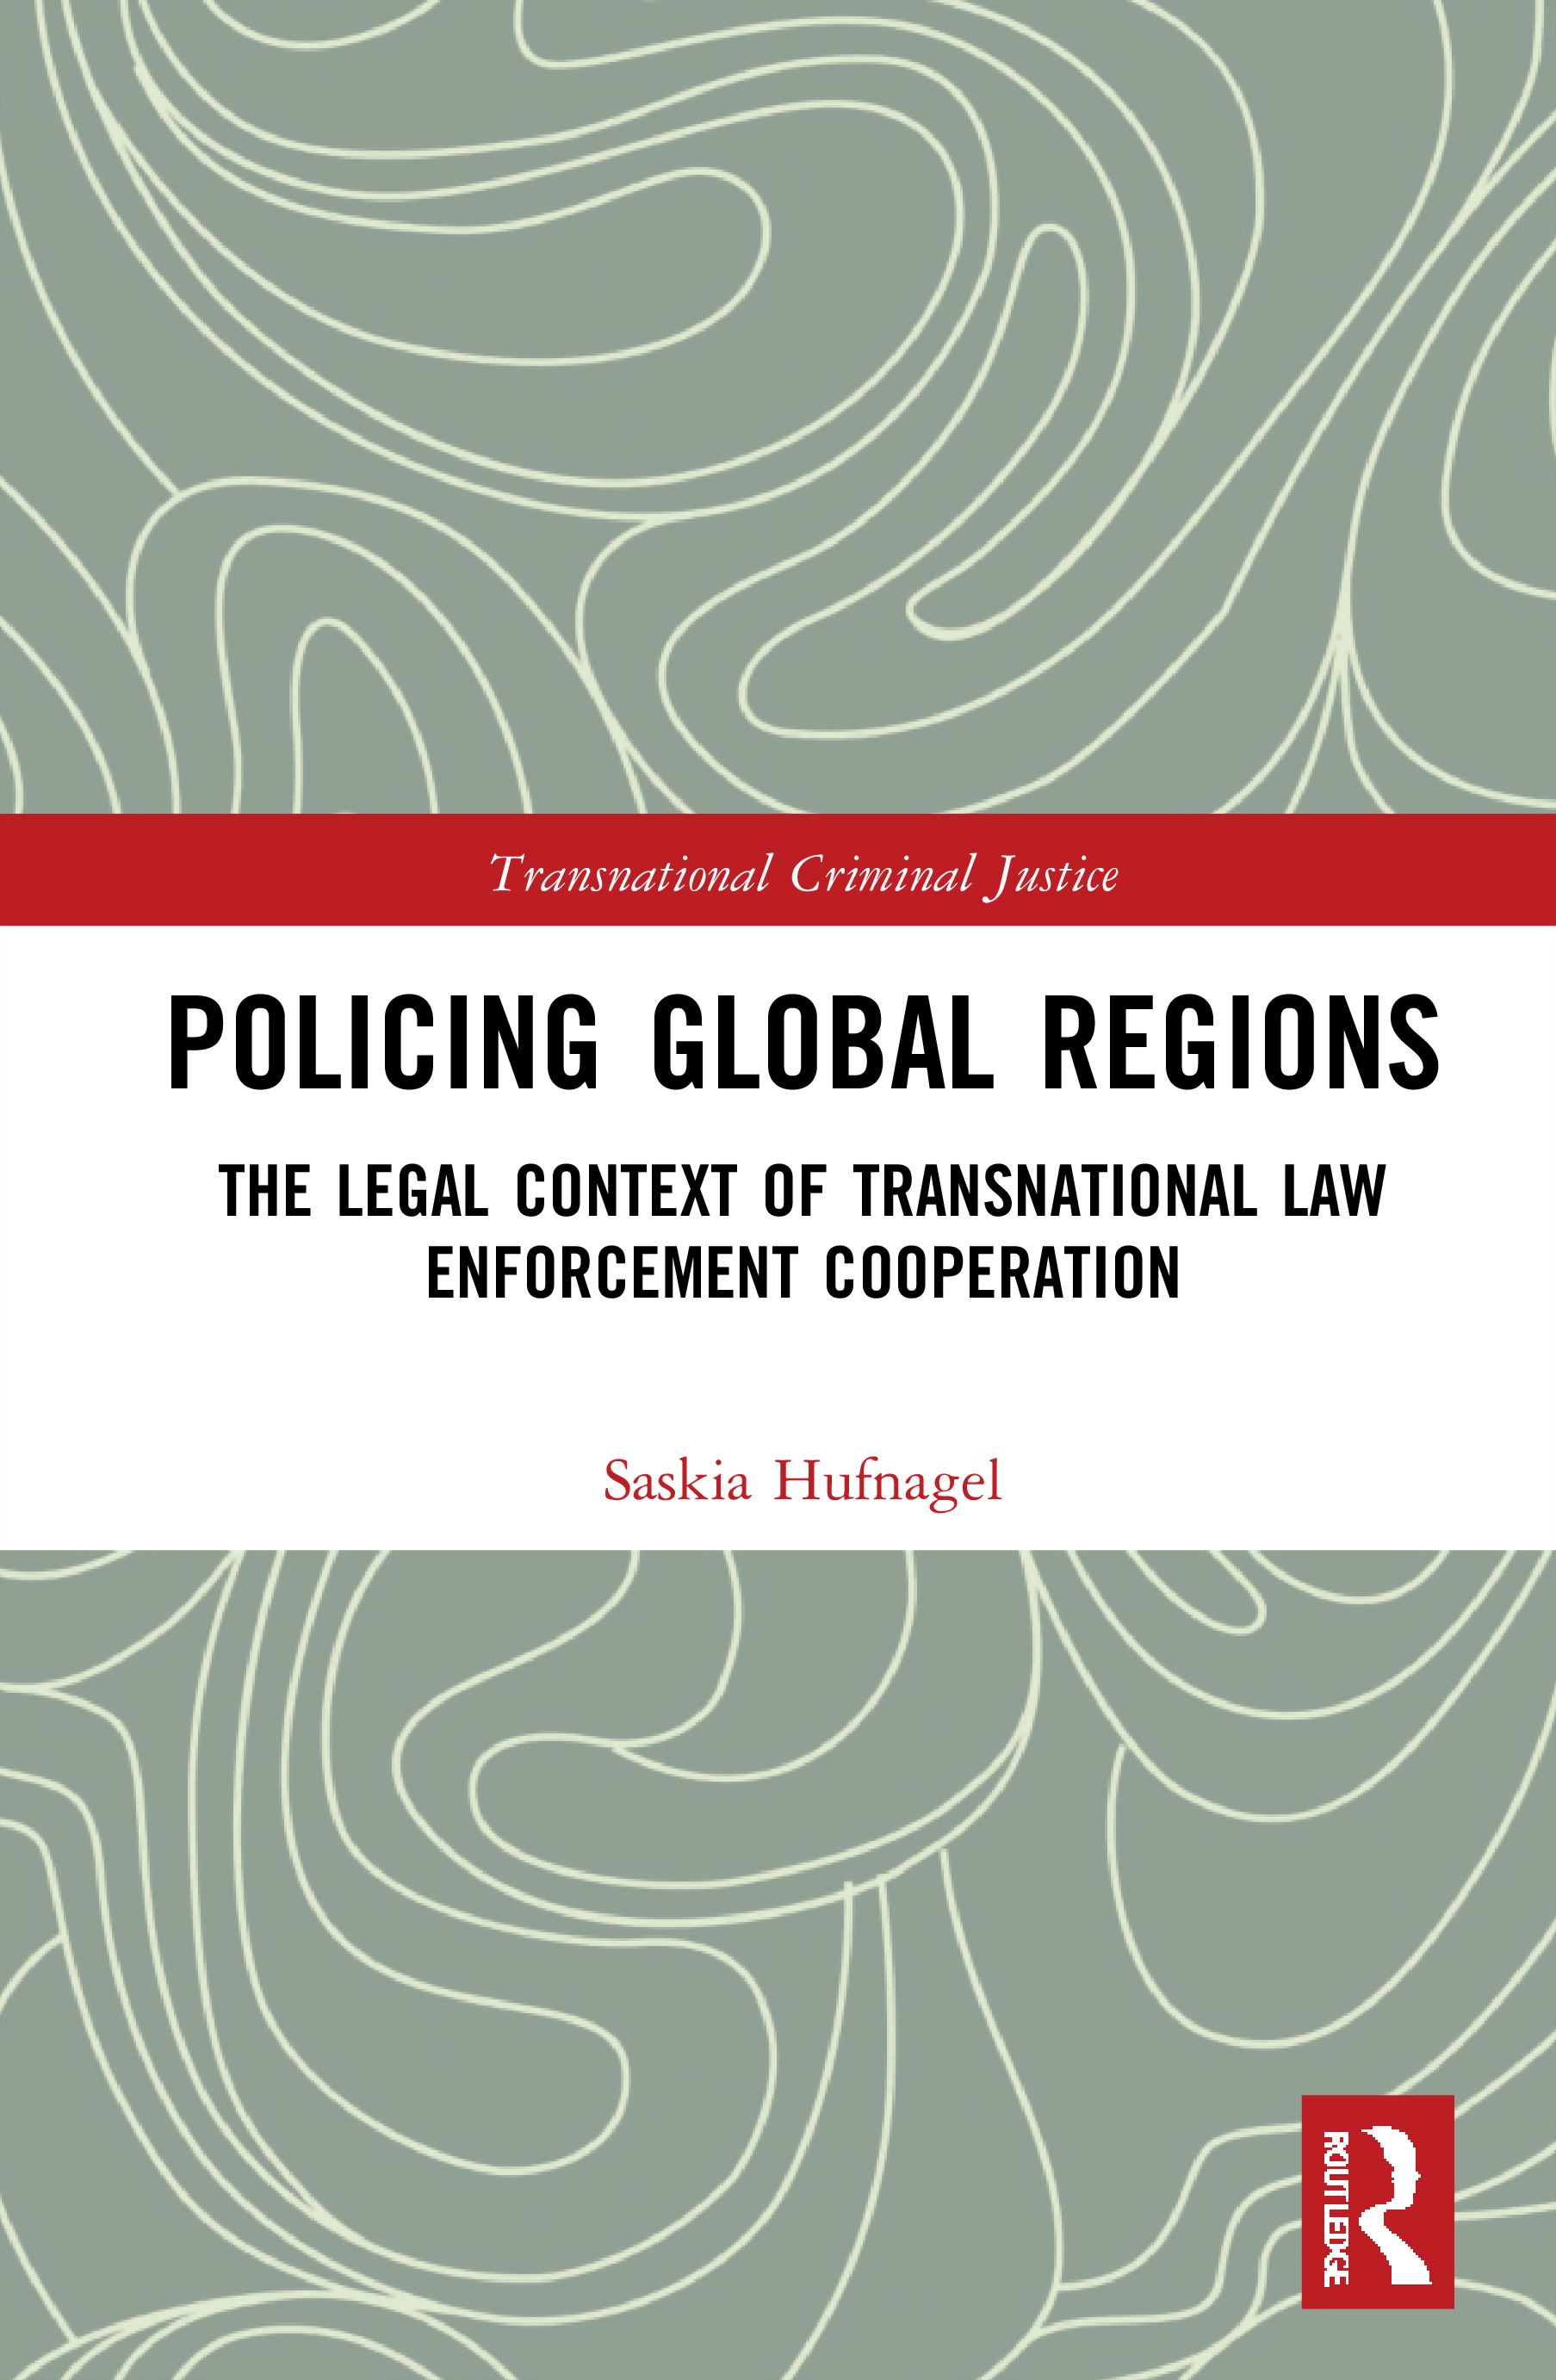 Policing Global Regions: The Legal Context of Transnational Law Enforcement Cooperation book cover